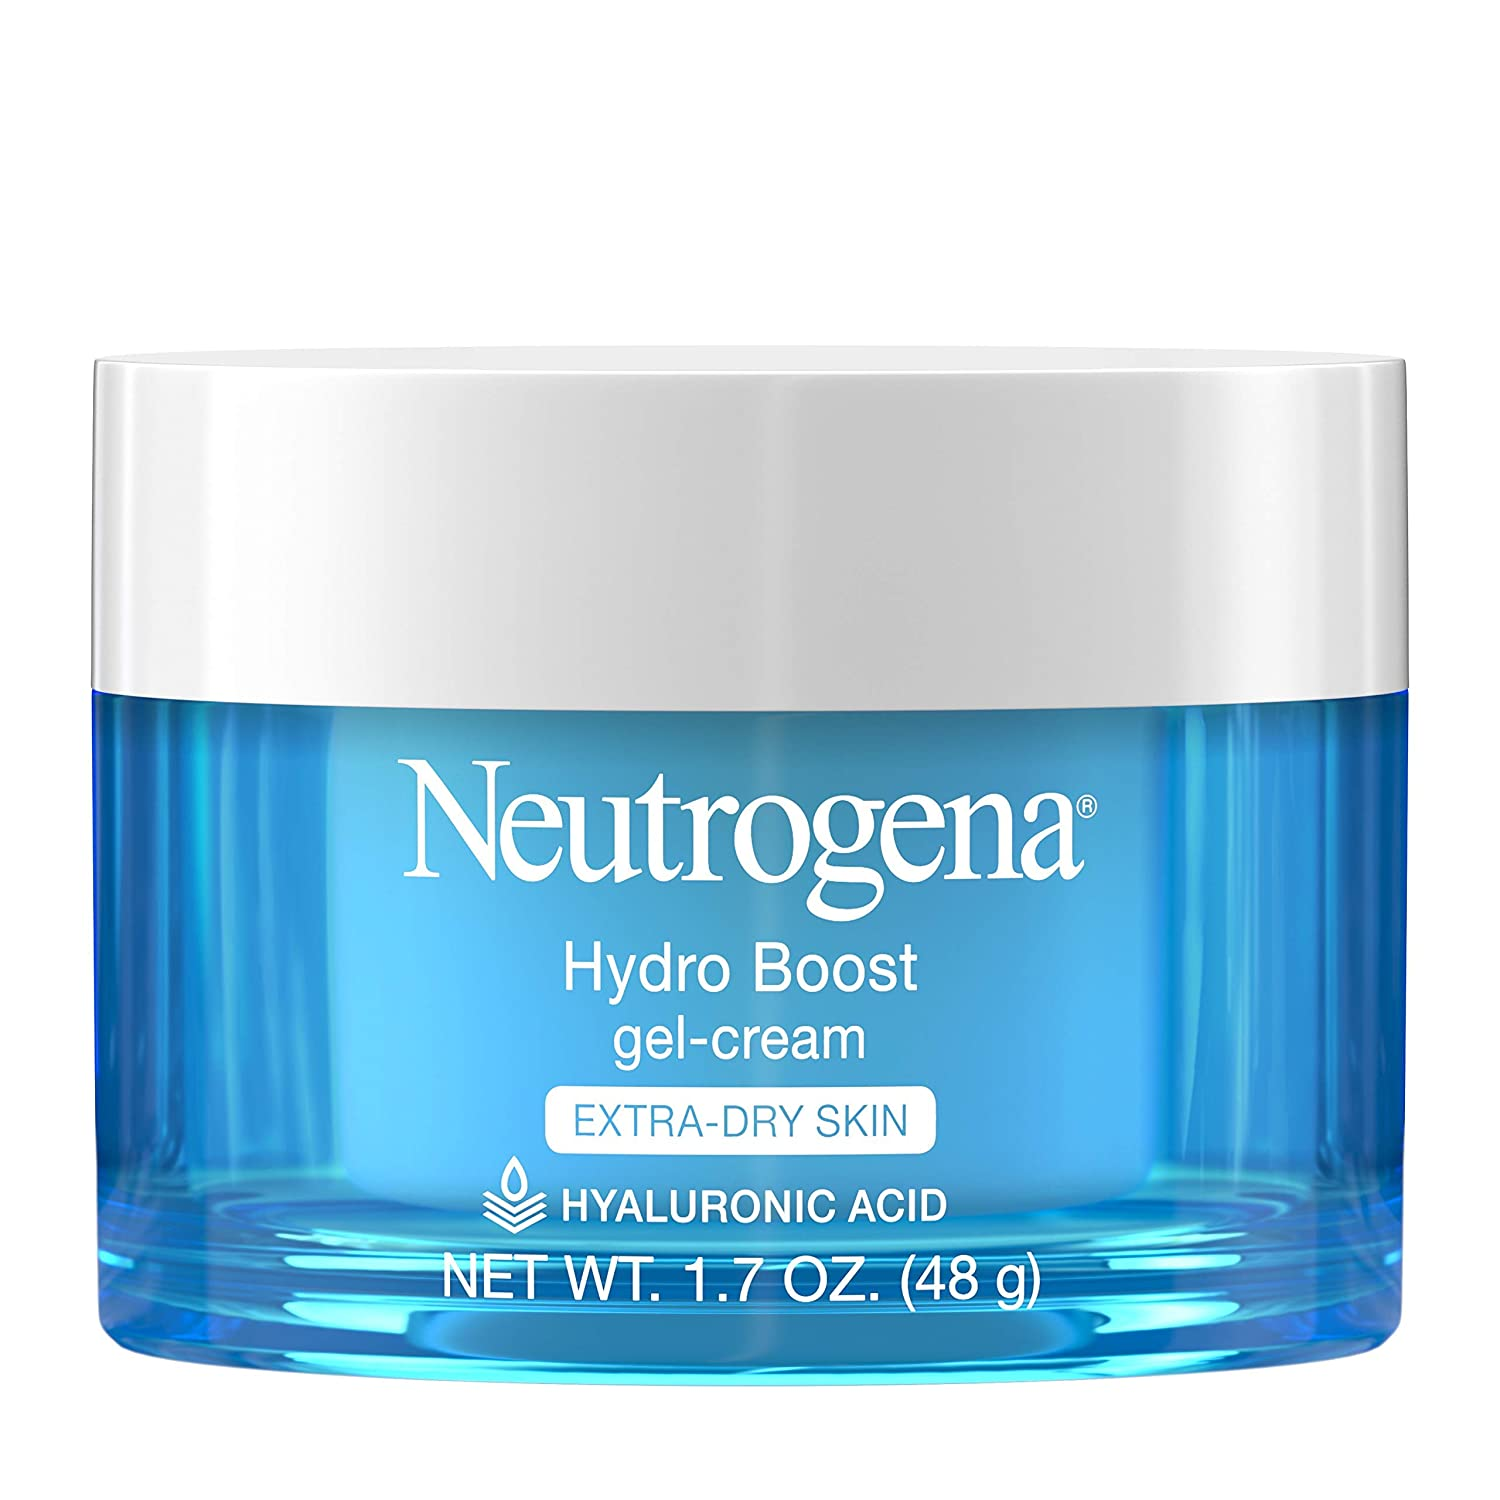 Neutrogena Hydro Boost Hyaluronic Acid Hydrating Face Moisturizer Gel-Cream to Hydrate and Smooth Extra-Dry Skin, 1.7 oz   ⭐️ Exclusive